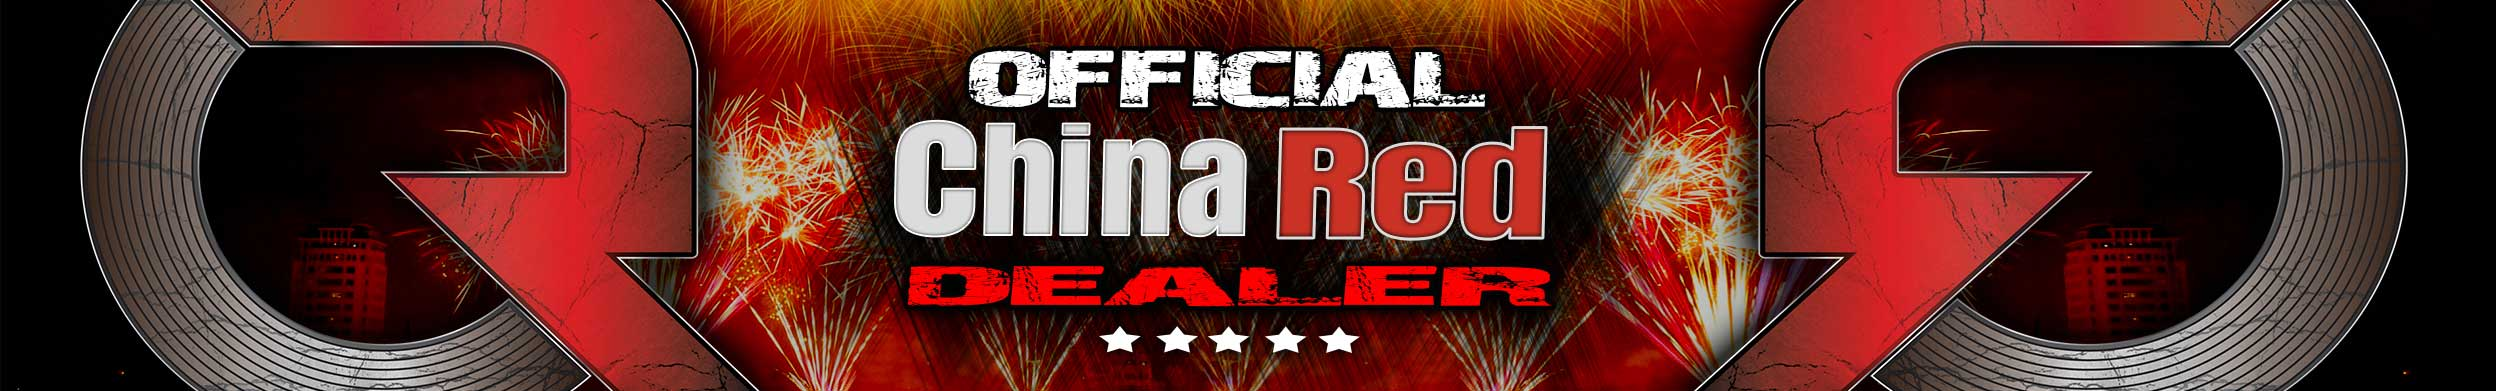 Verbakel Vuurwerk is official China Red Dealer